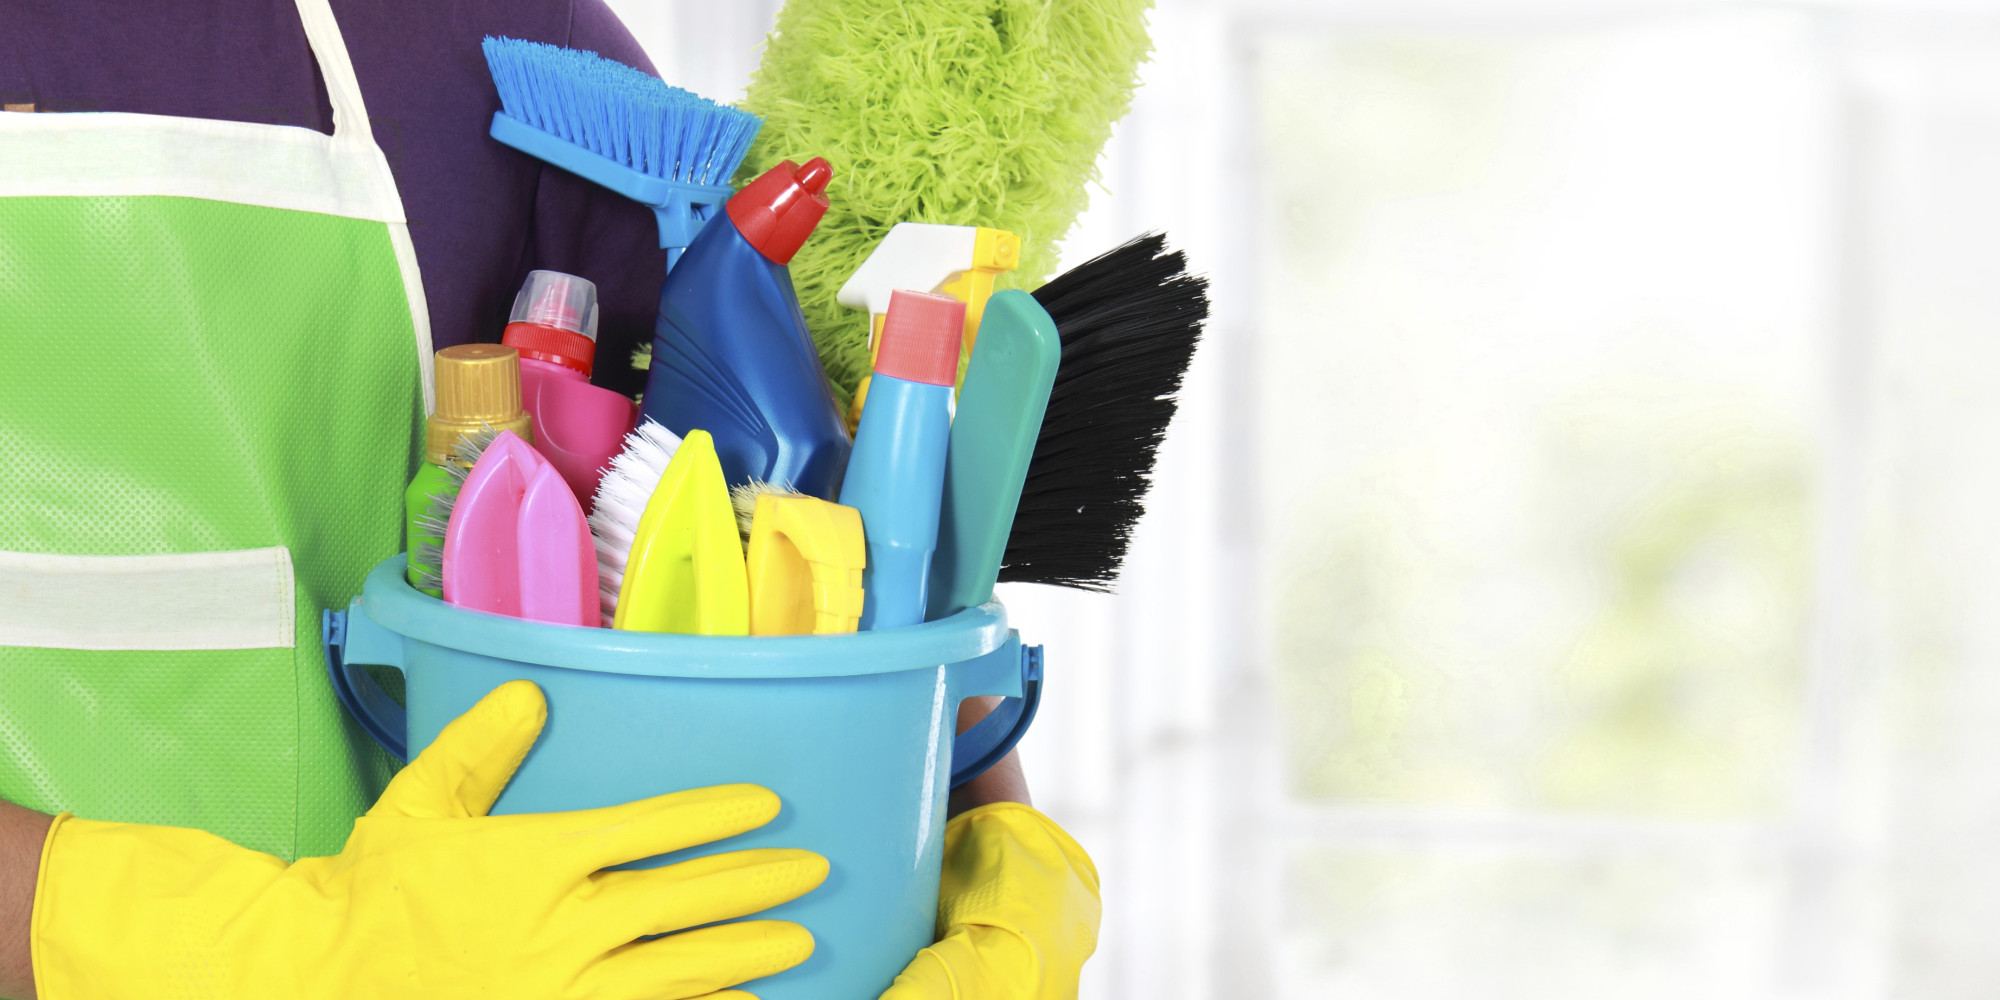 Clean Home here's how you can hire a home cleaning service for the first time